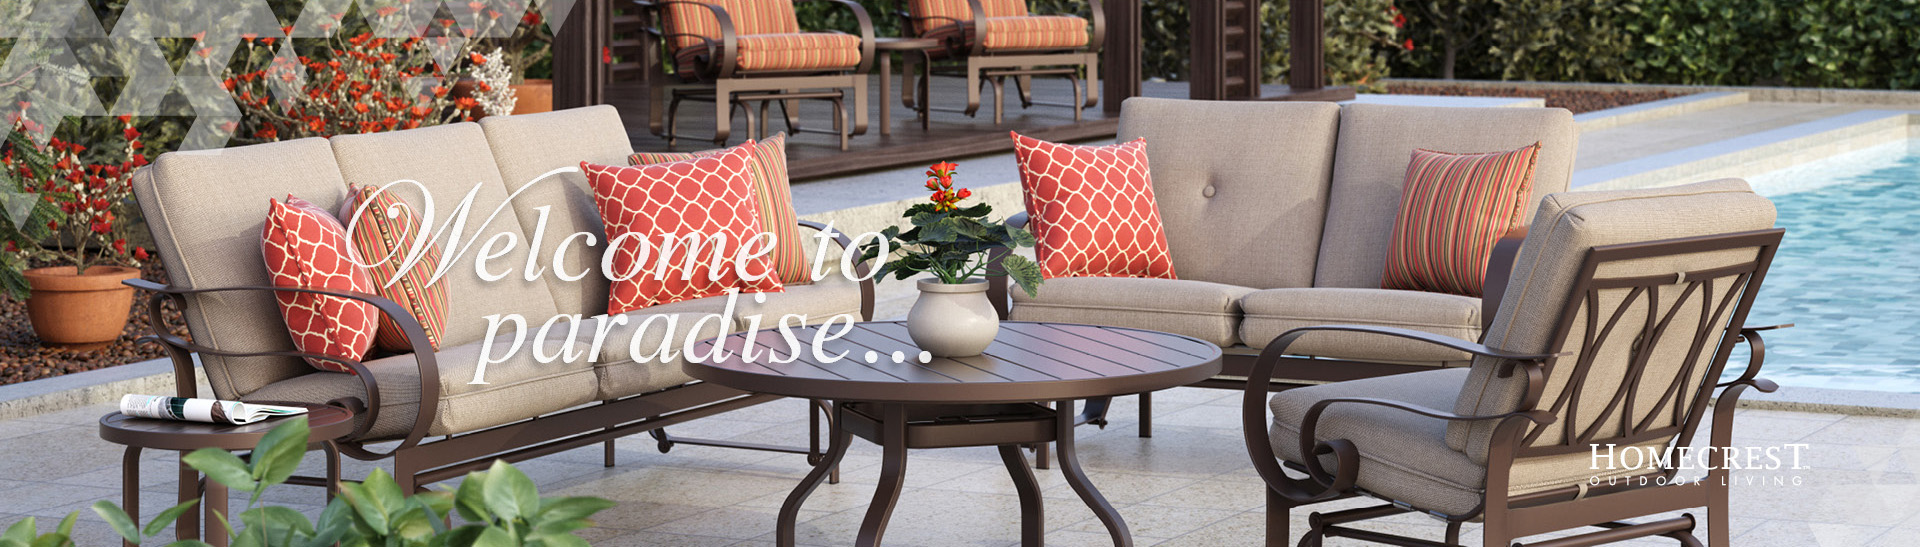 Durable Stylish Patio Furniture High Quality Outdoor Furniture